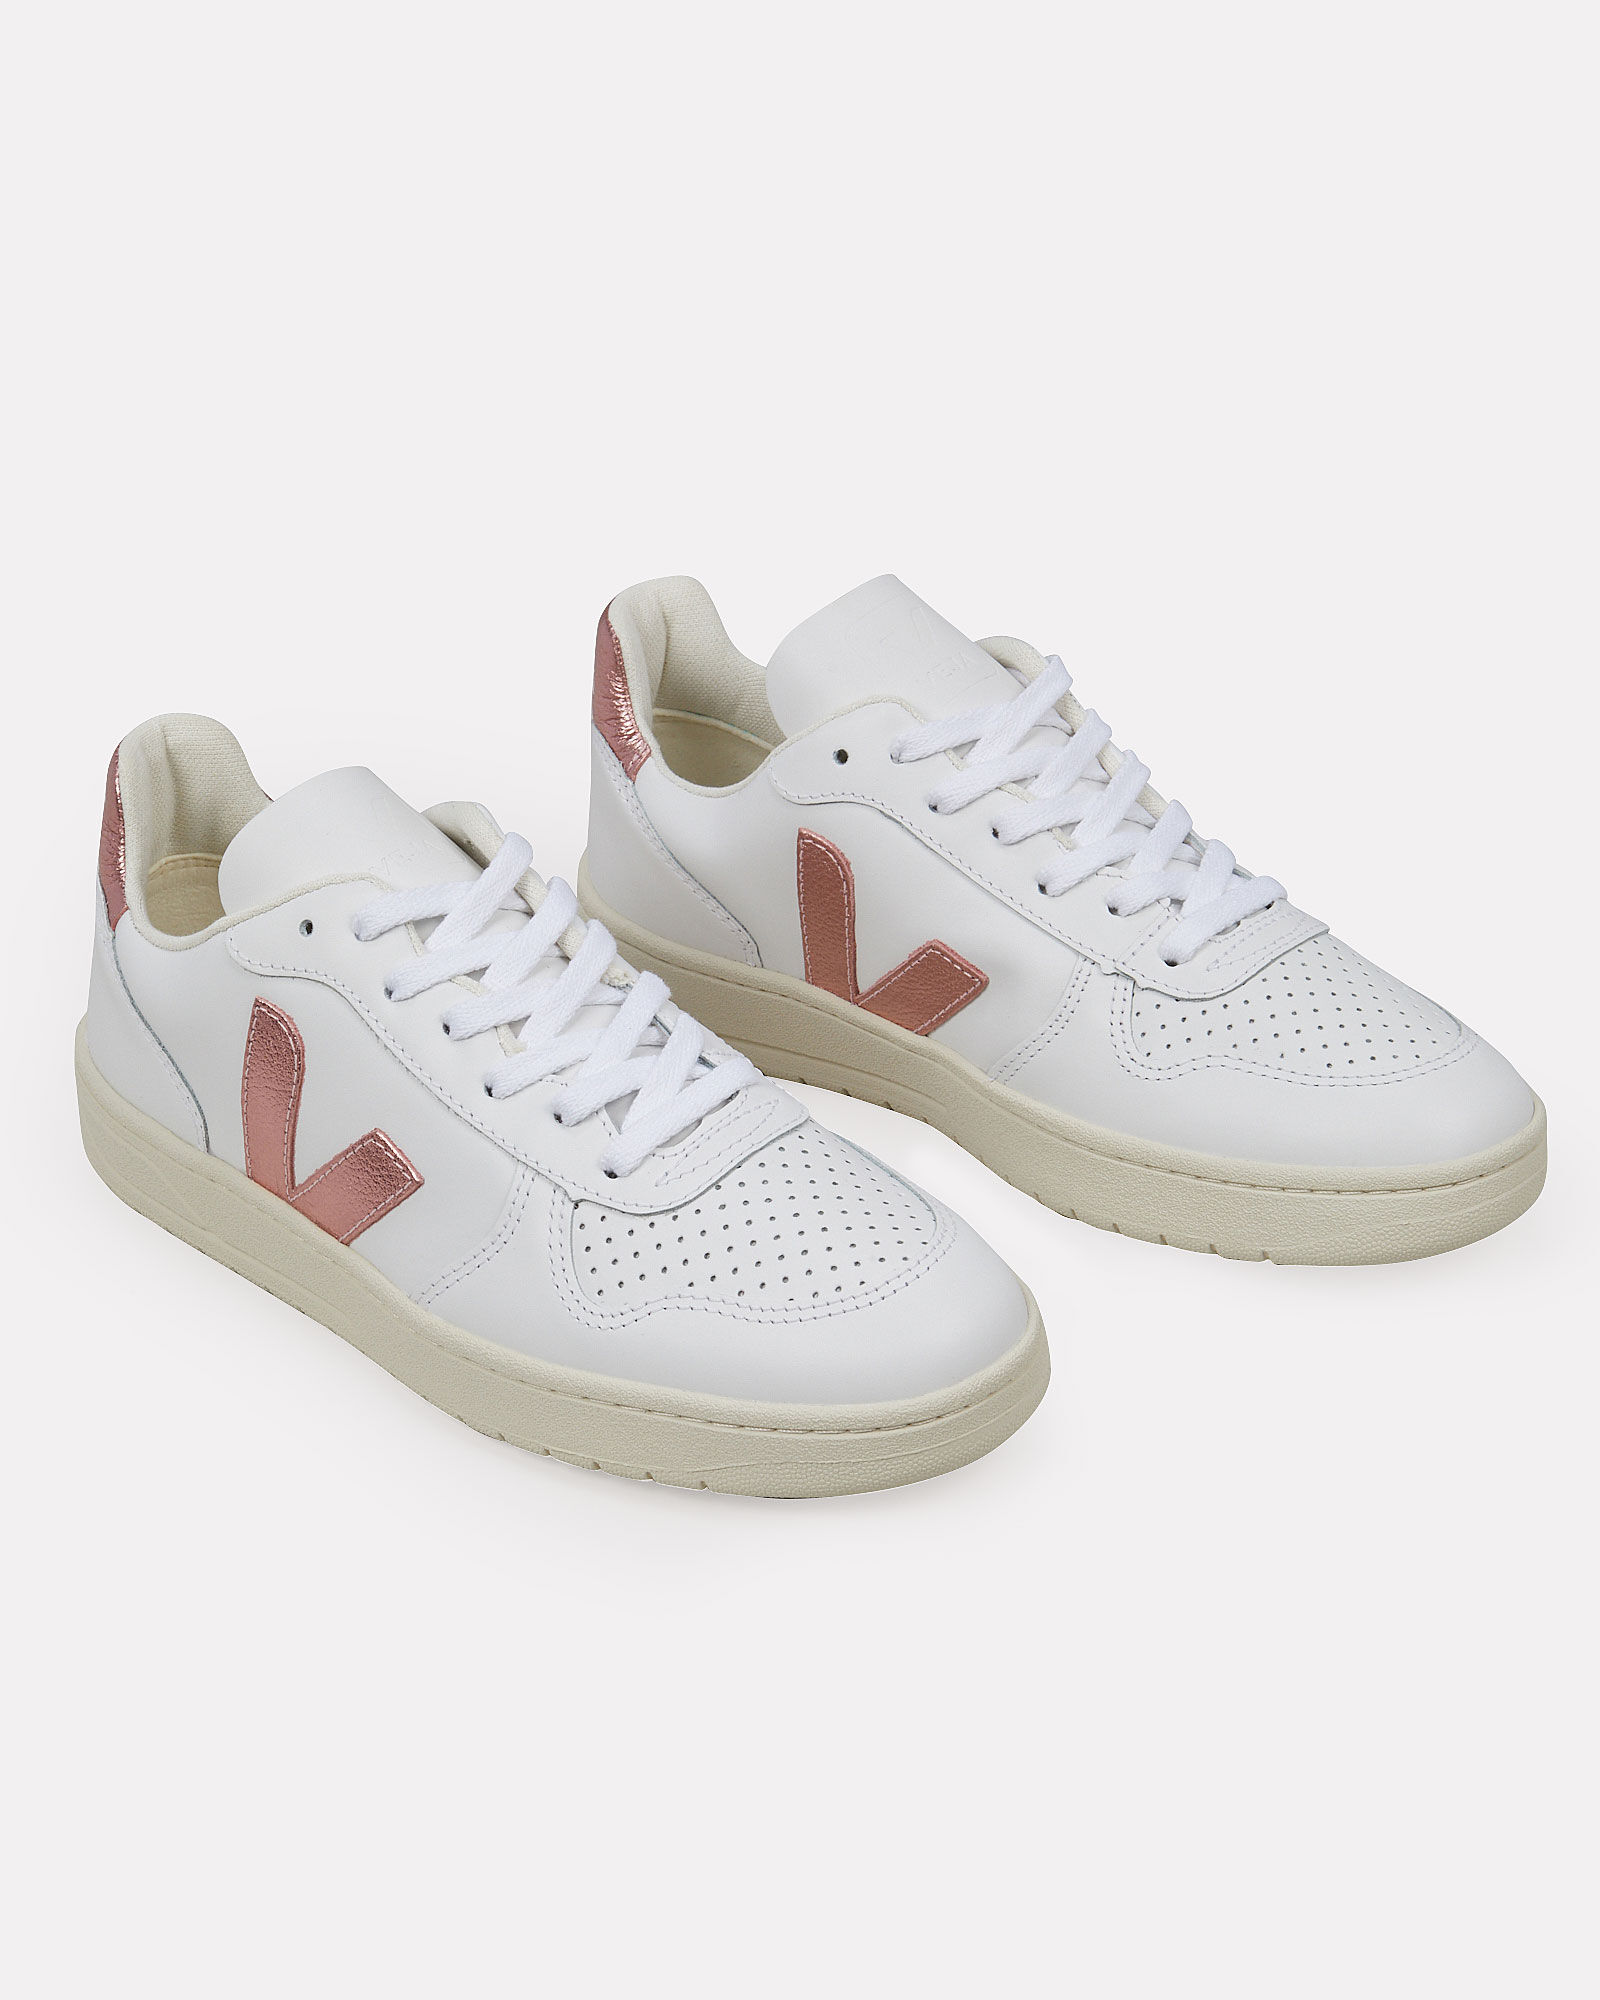 V-10 Low Top Sneakers, WHITE/PINK, hi-res